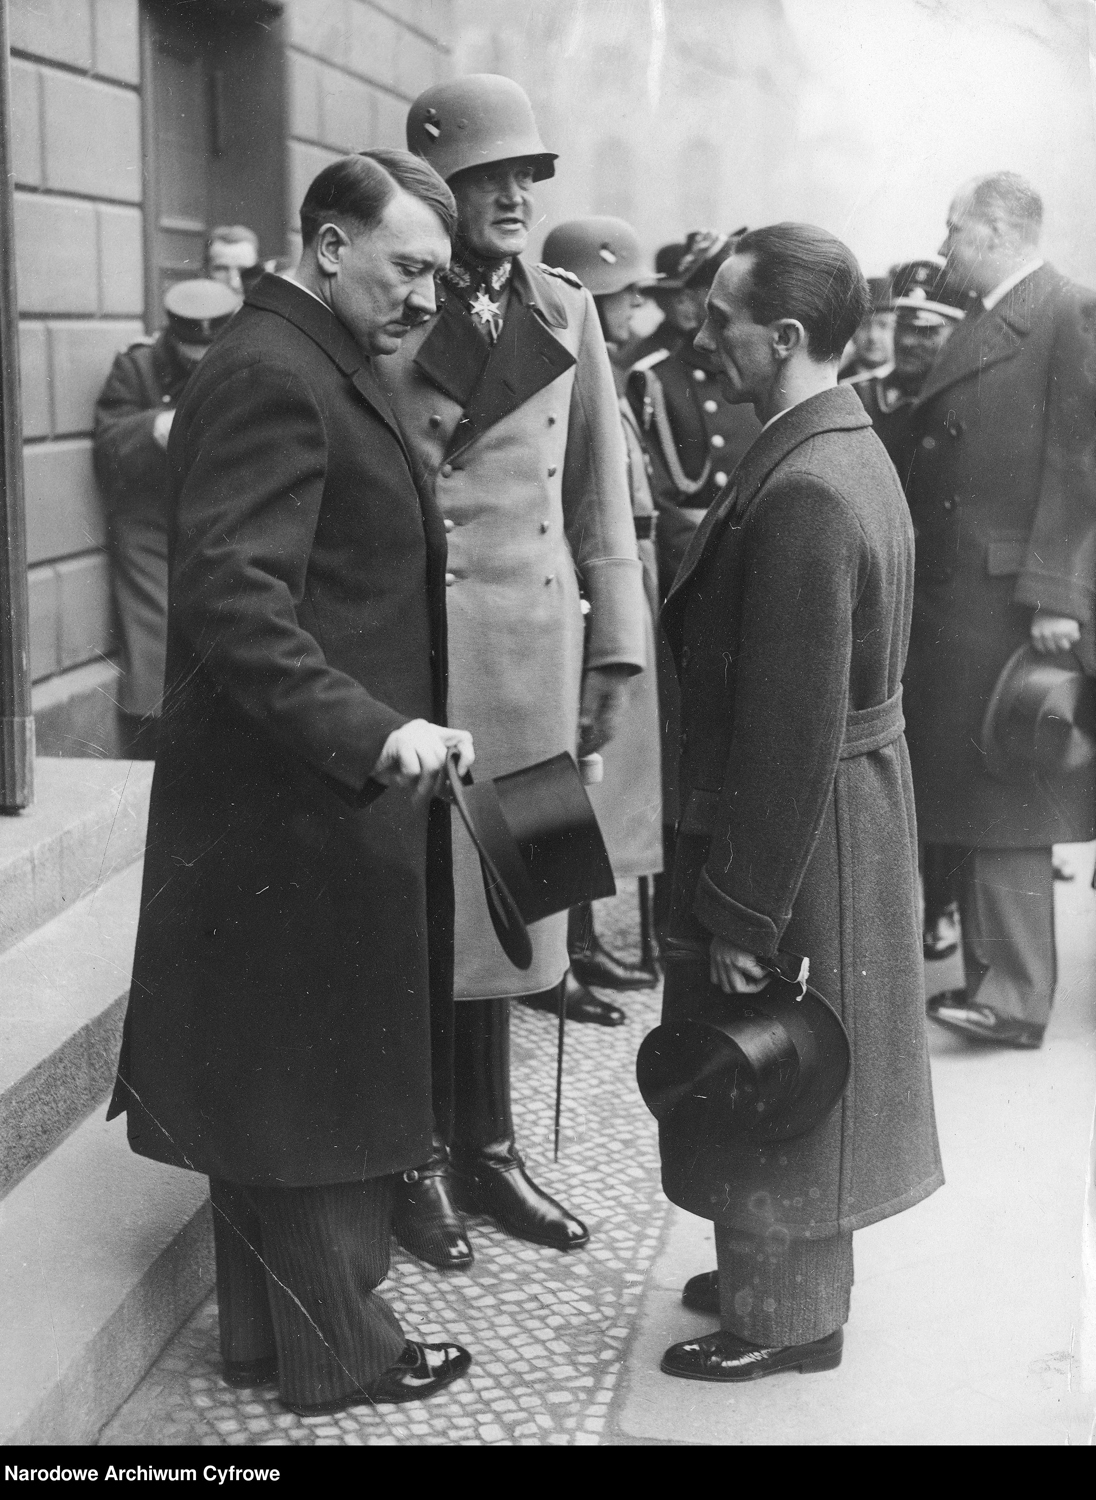 Adolf Hitler with Werner von Blomberg and Joseph Goebbels at the Day of Potsdam